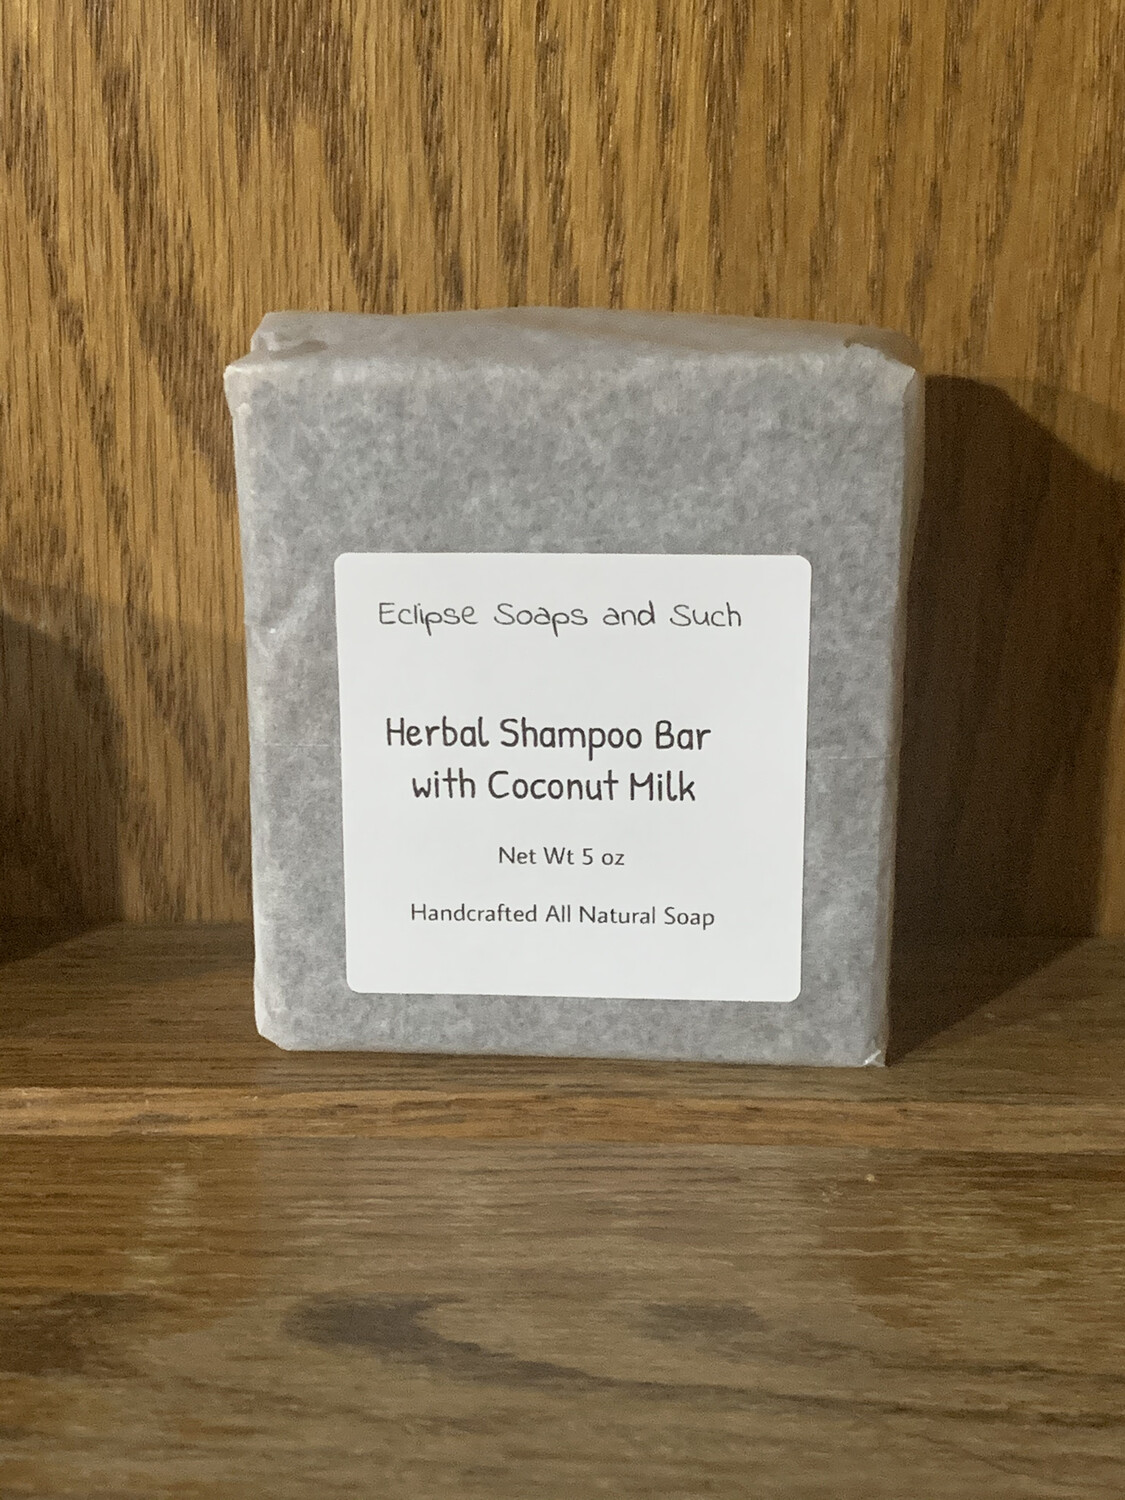 Herbal Shampoo Bar with Coconut Milk